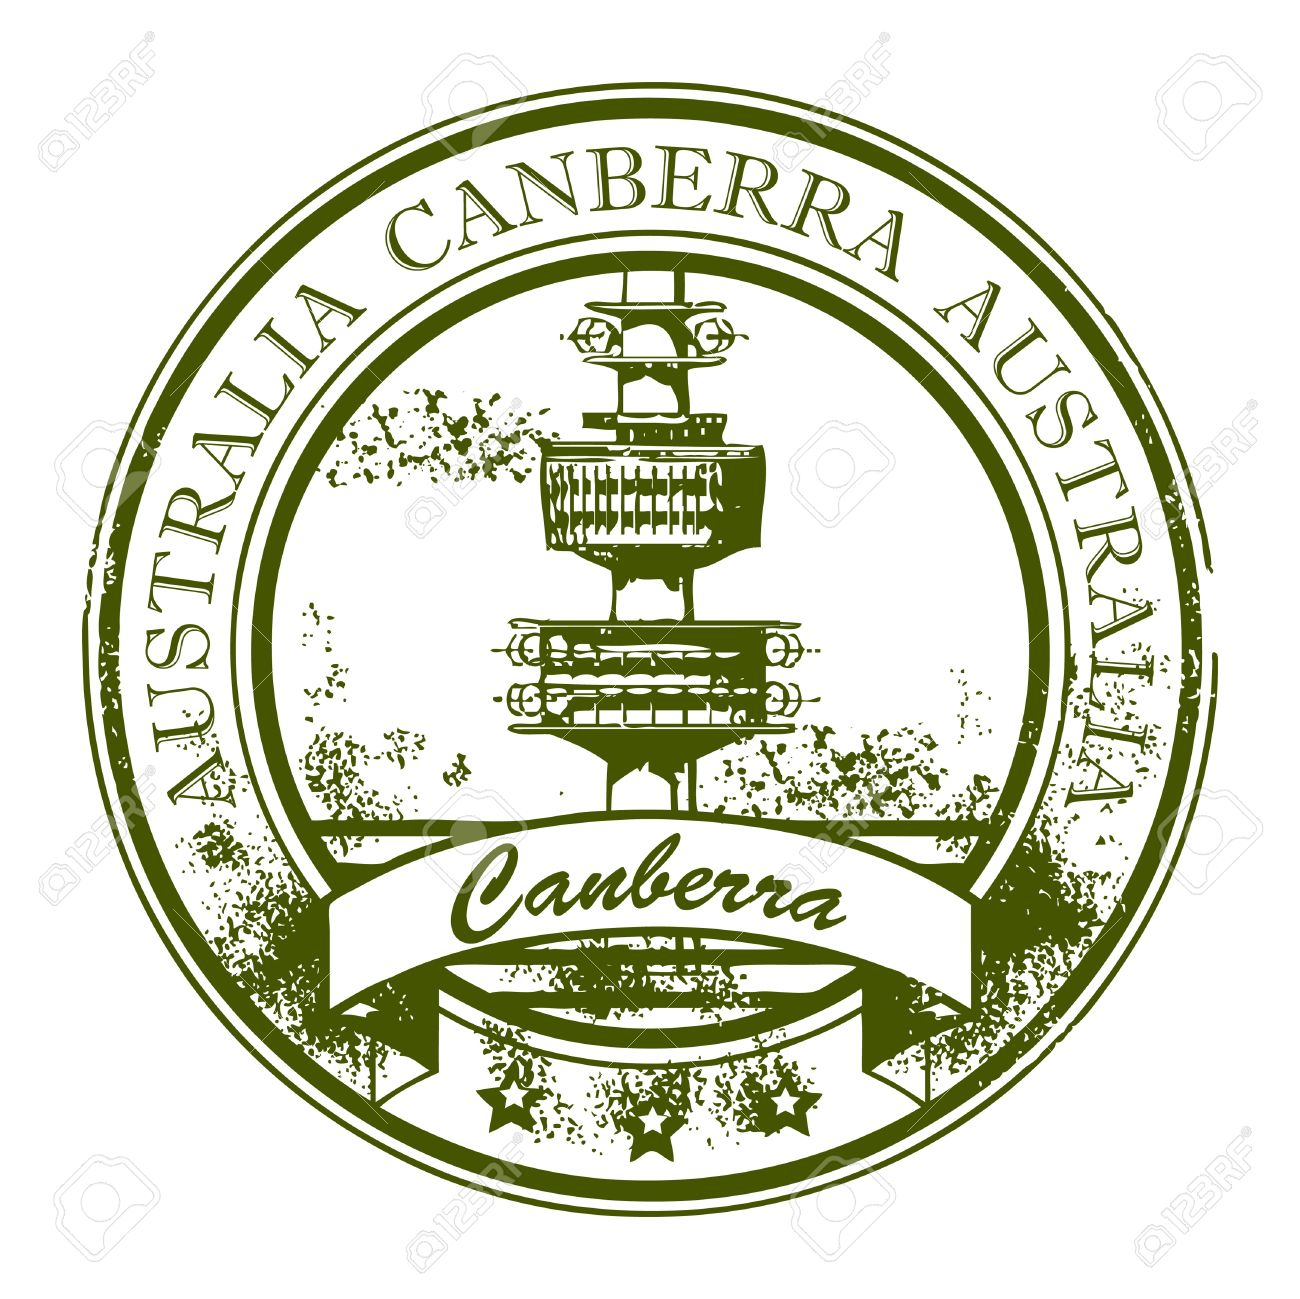 934 Canberra Australia Stock Vector Illustration And Royalty Free.